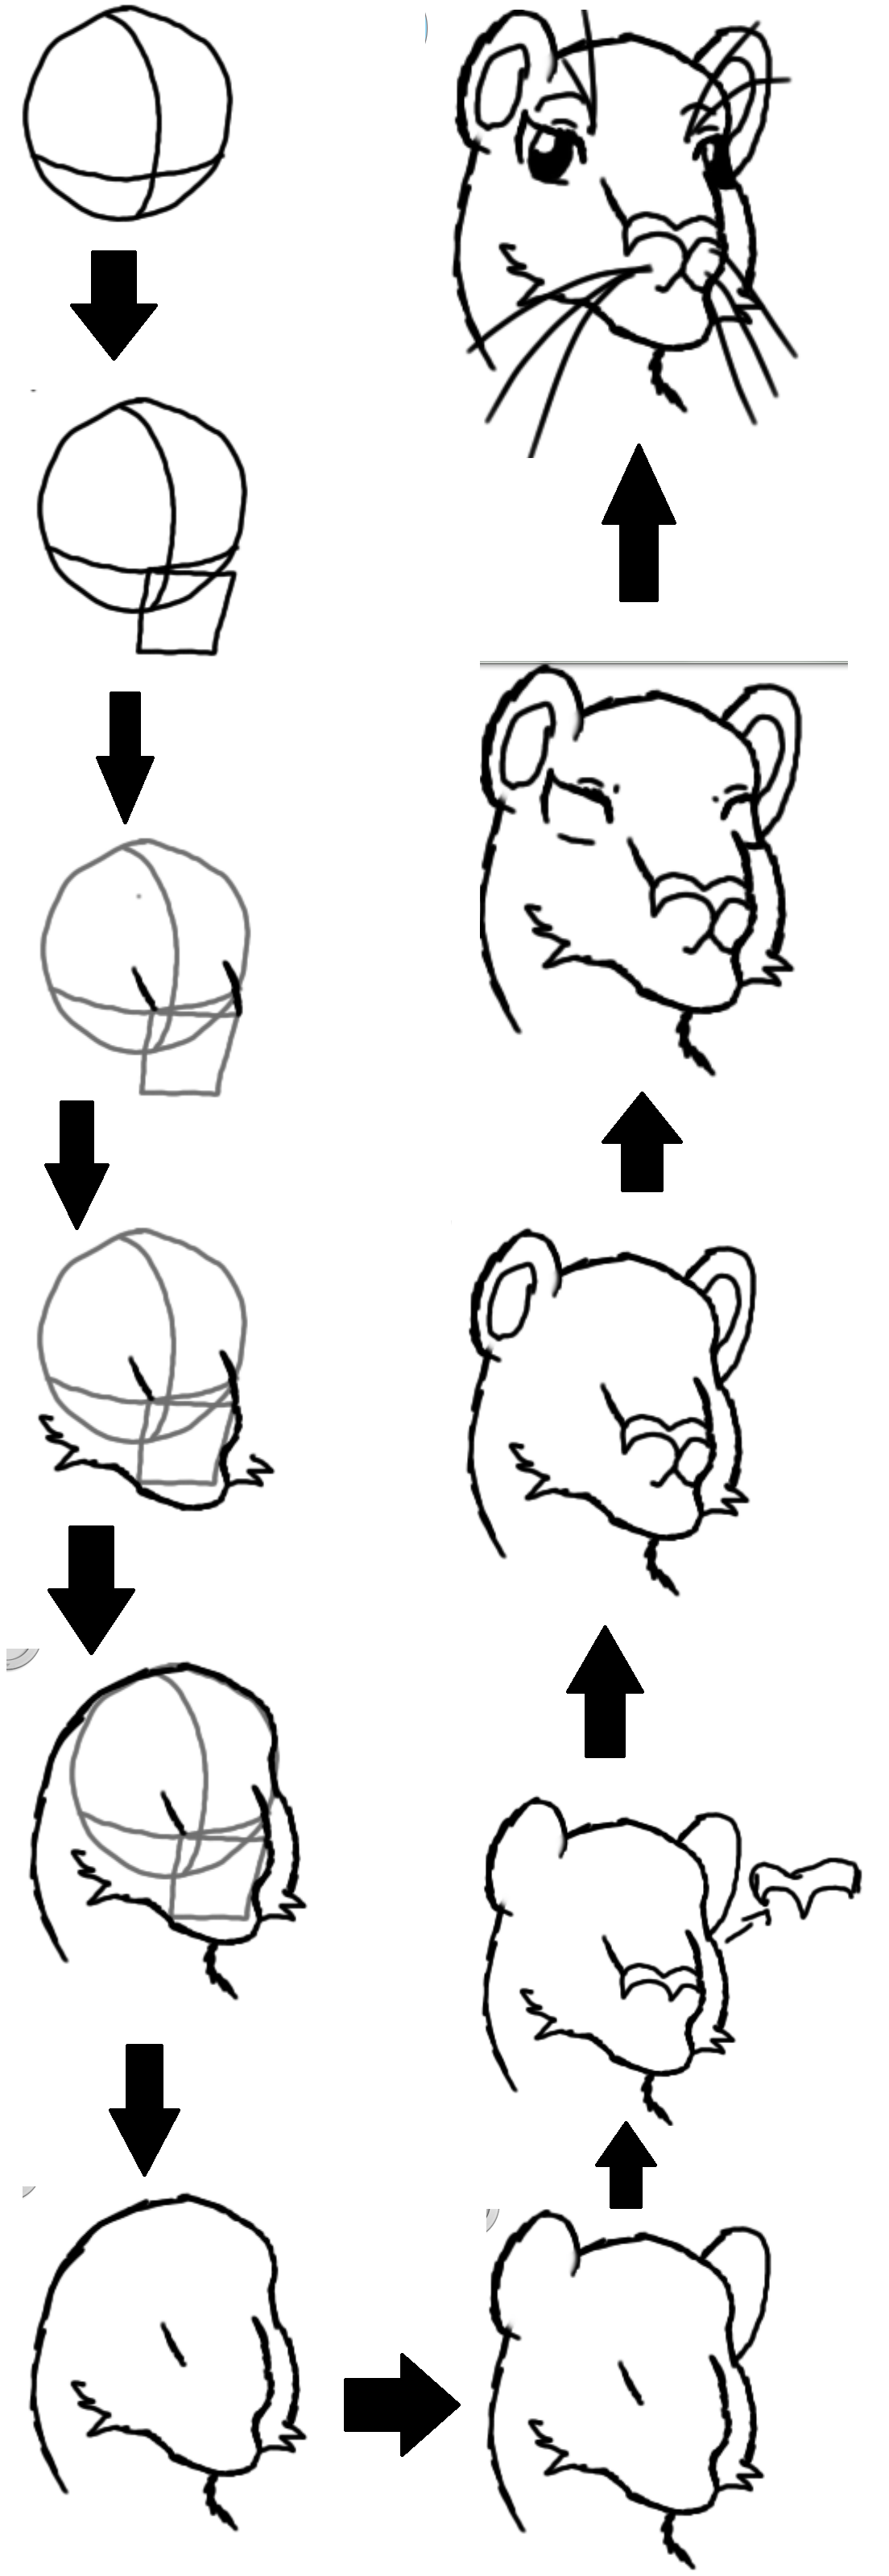 how to draw lion cartoon lion sketch for kids at paintingvalleycom explore cartoon draw to how lion